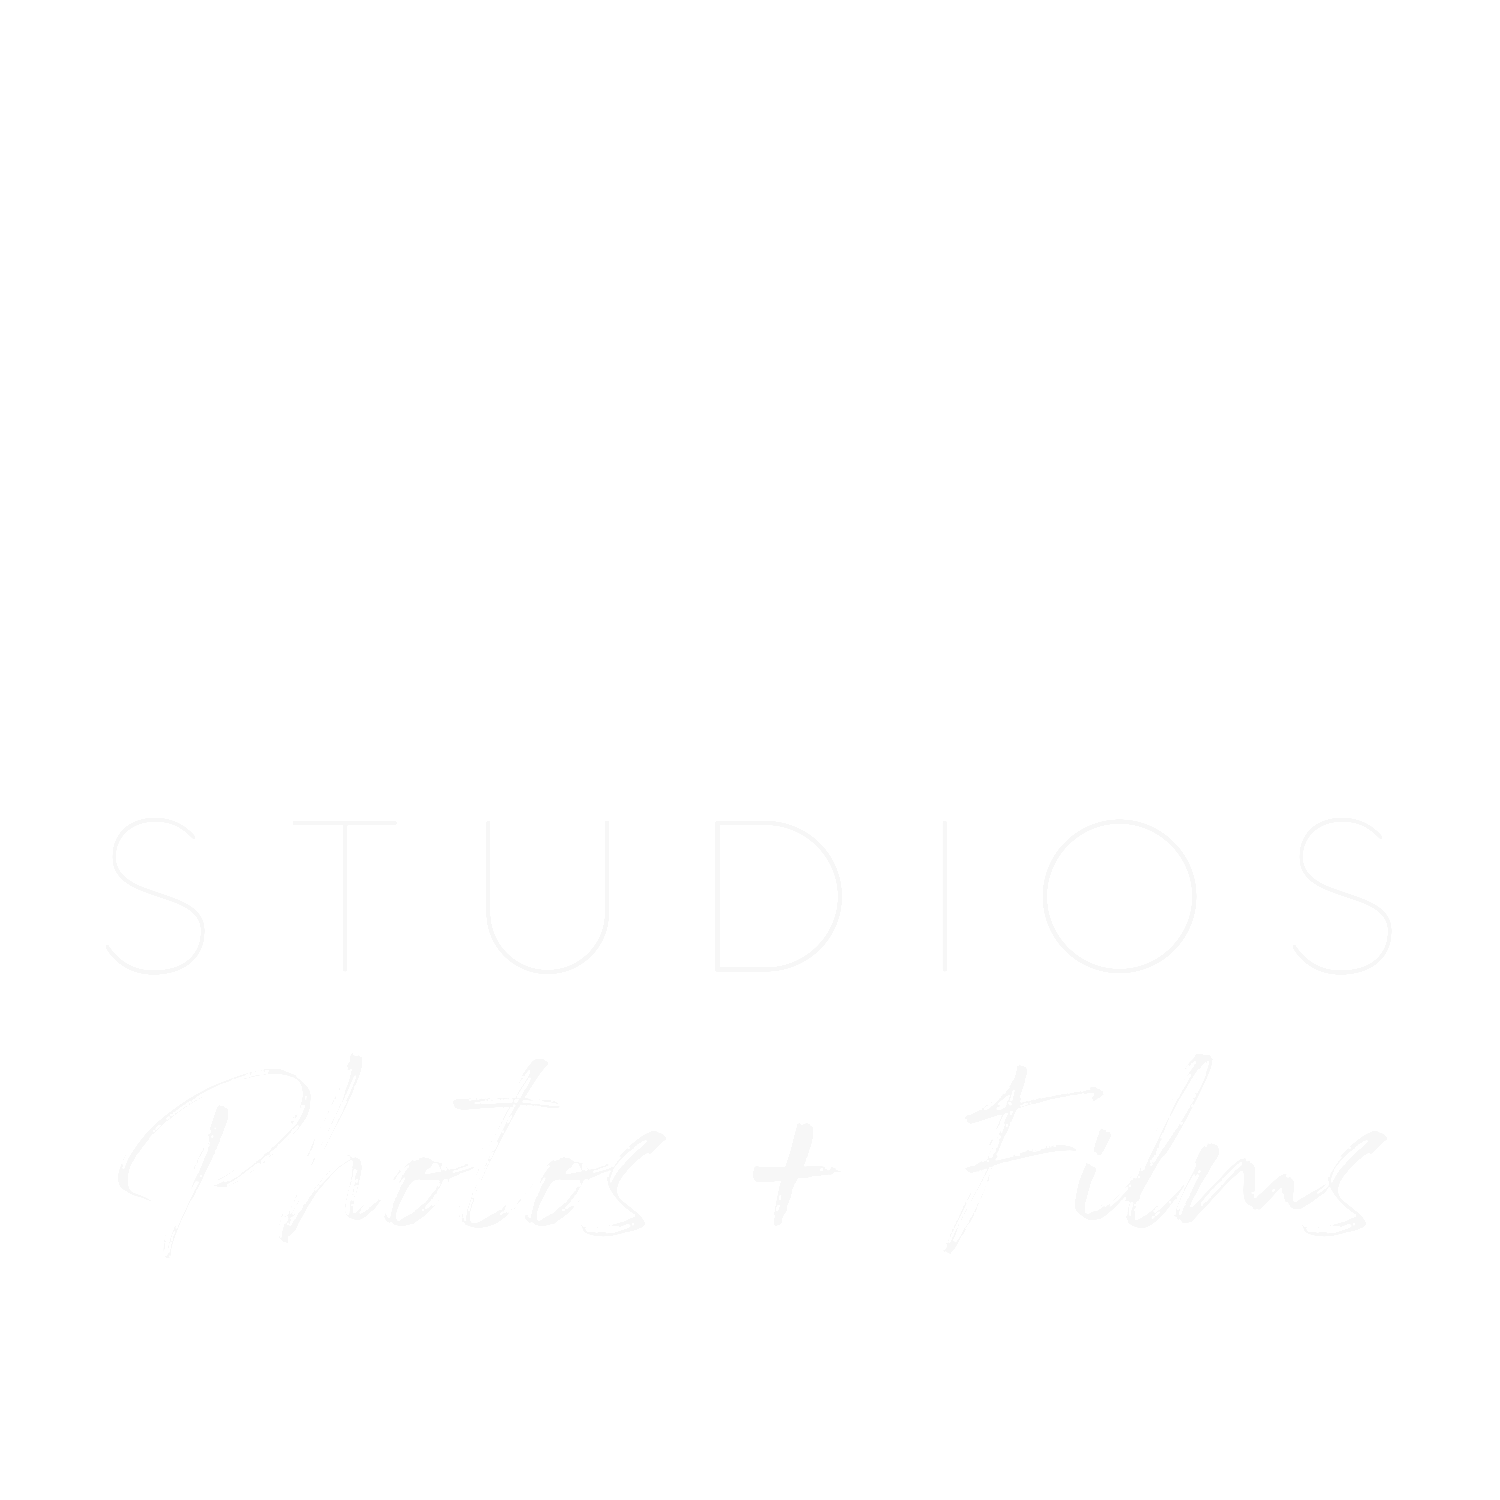 ELECTRIC LOVE STUDIOS